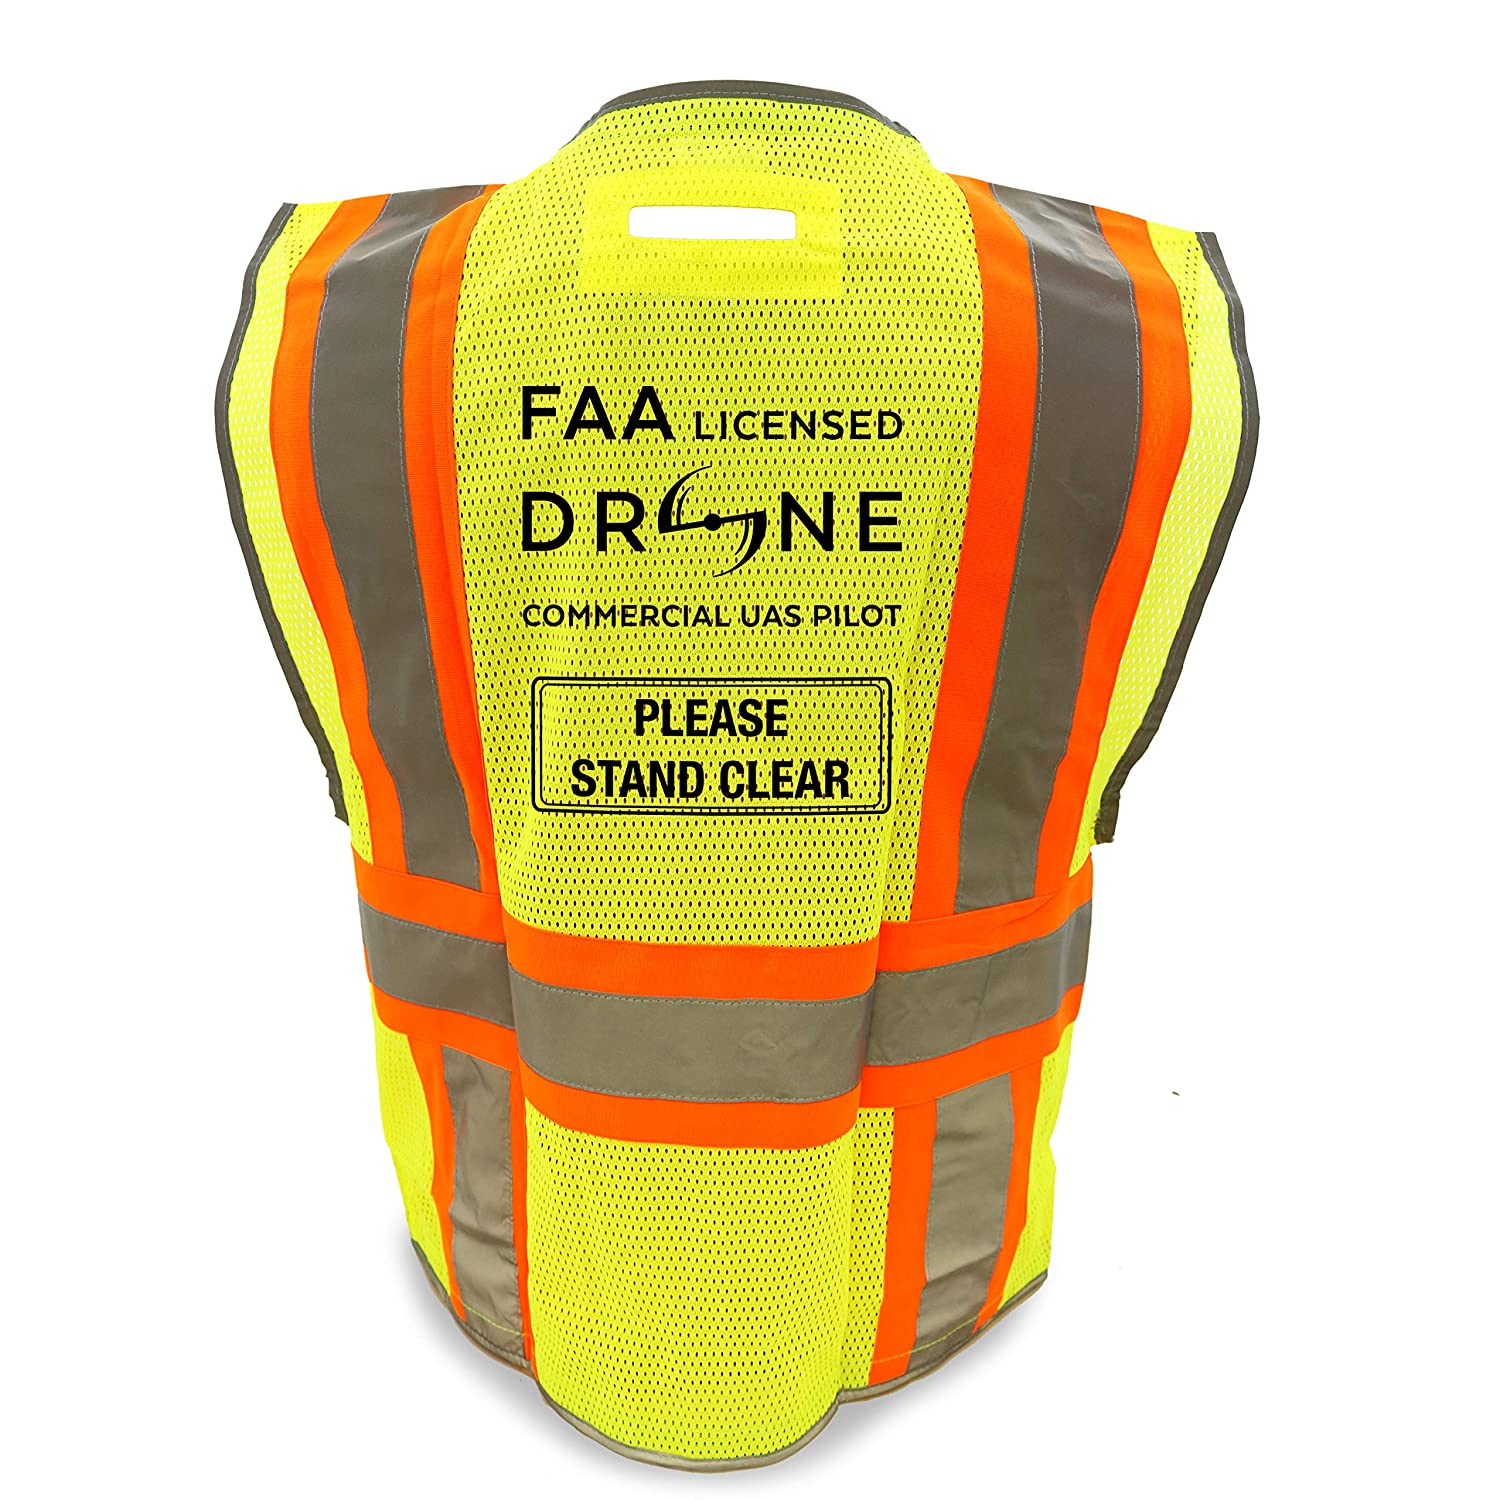 KwikSafety (Charlotte, NC) PILOT | Drone Safety Vest | Class 2 ANSI Compliant FAA Licensed | 360° High Visibility Reflective UAG Work Wear | Hi Vis Certified Commercial Pilot Men & Women | Small